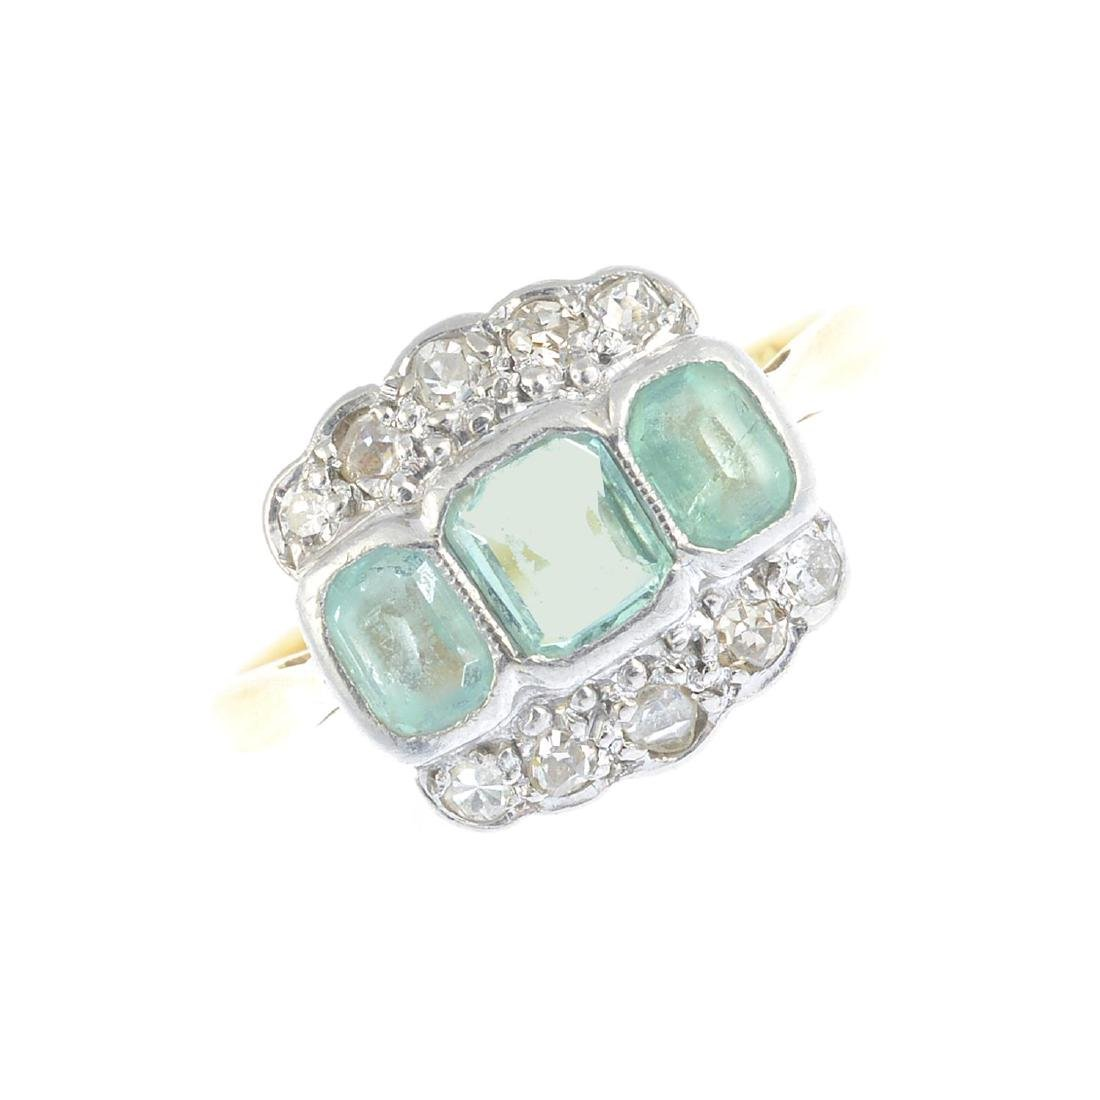 An early 20th century platinum and 18ct gold emerald